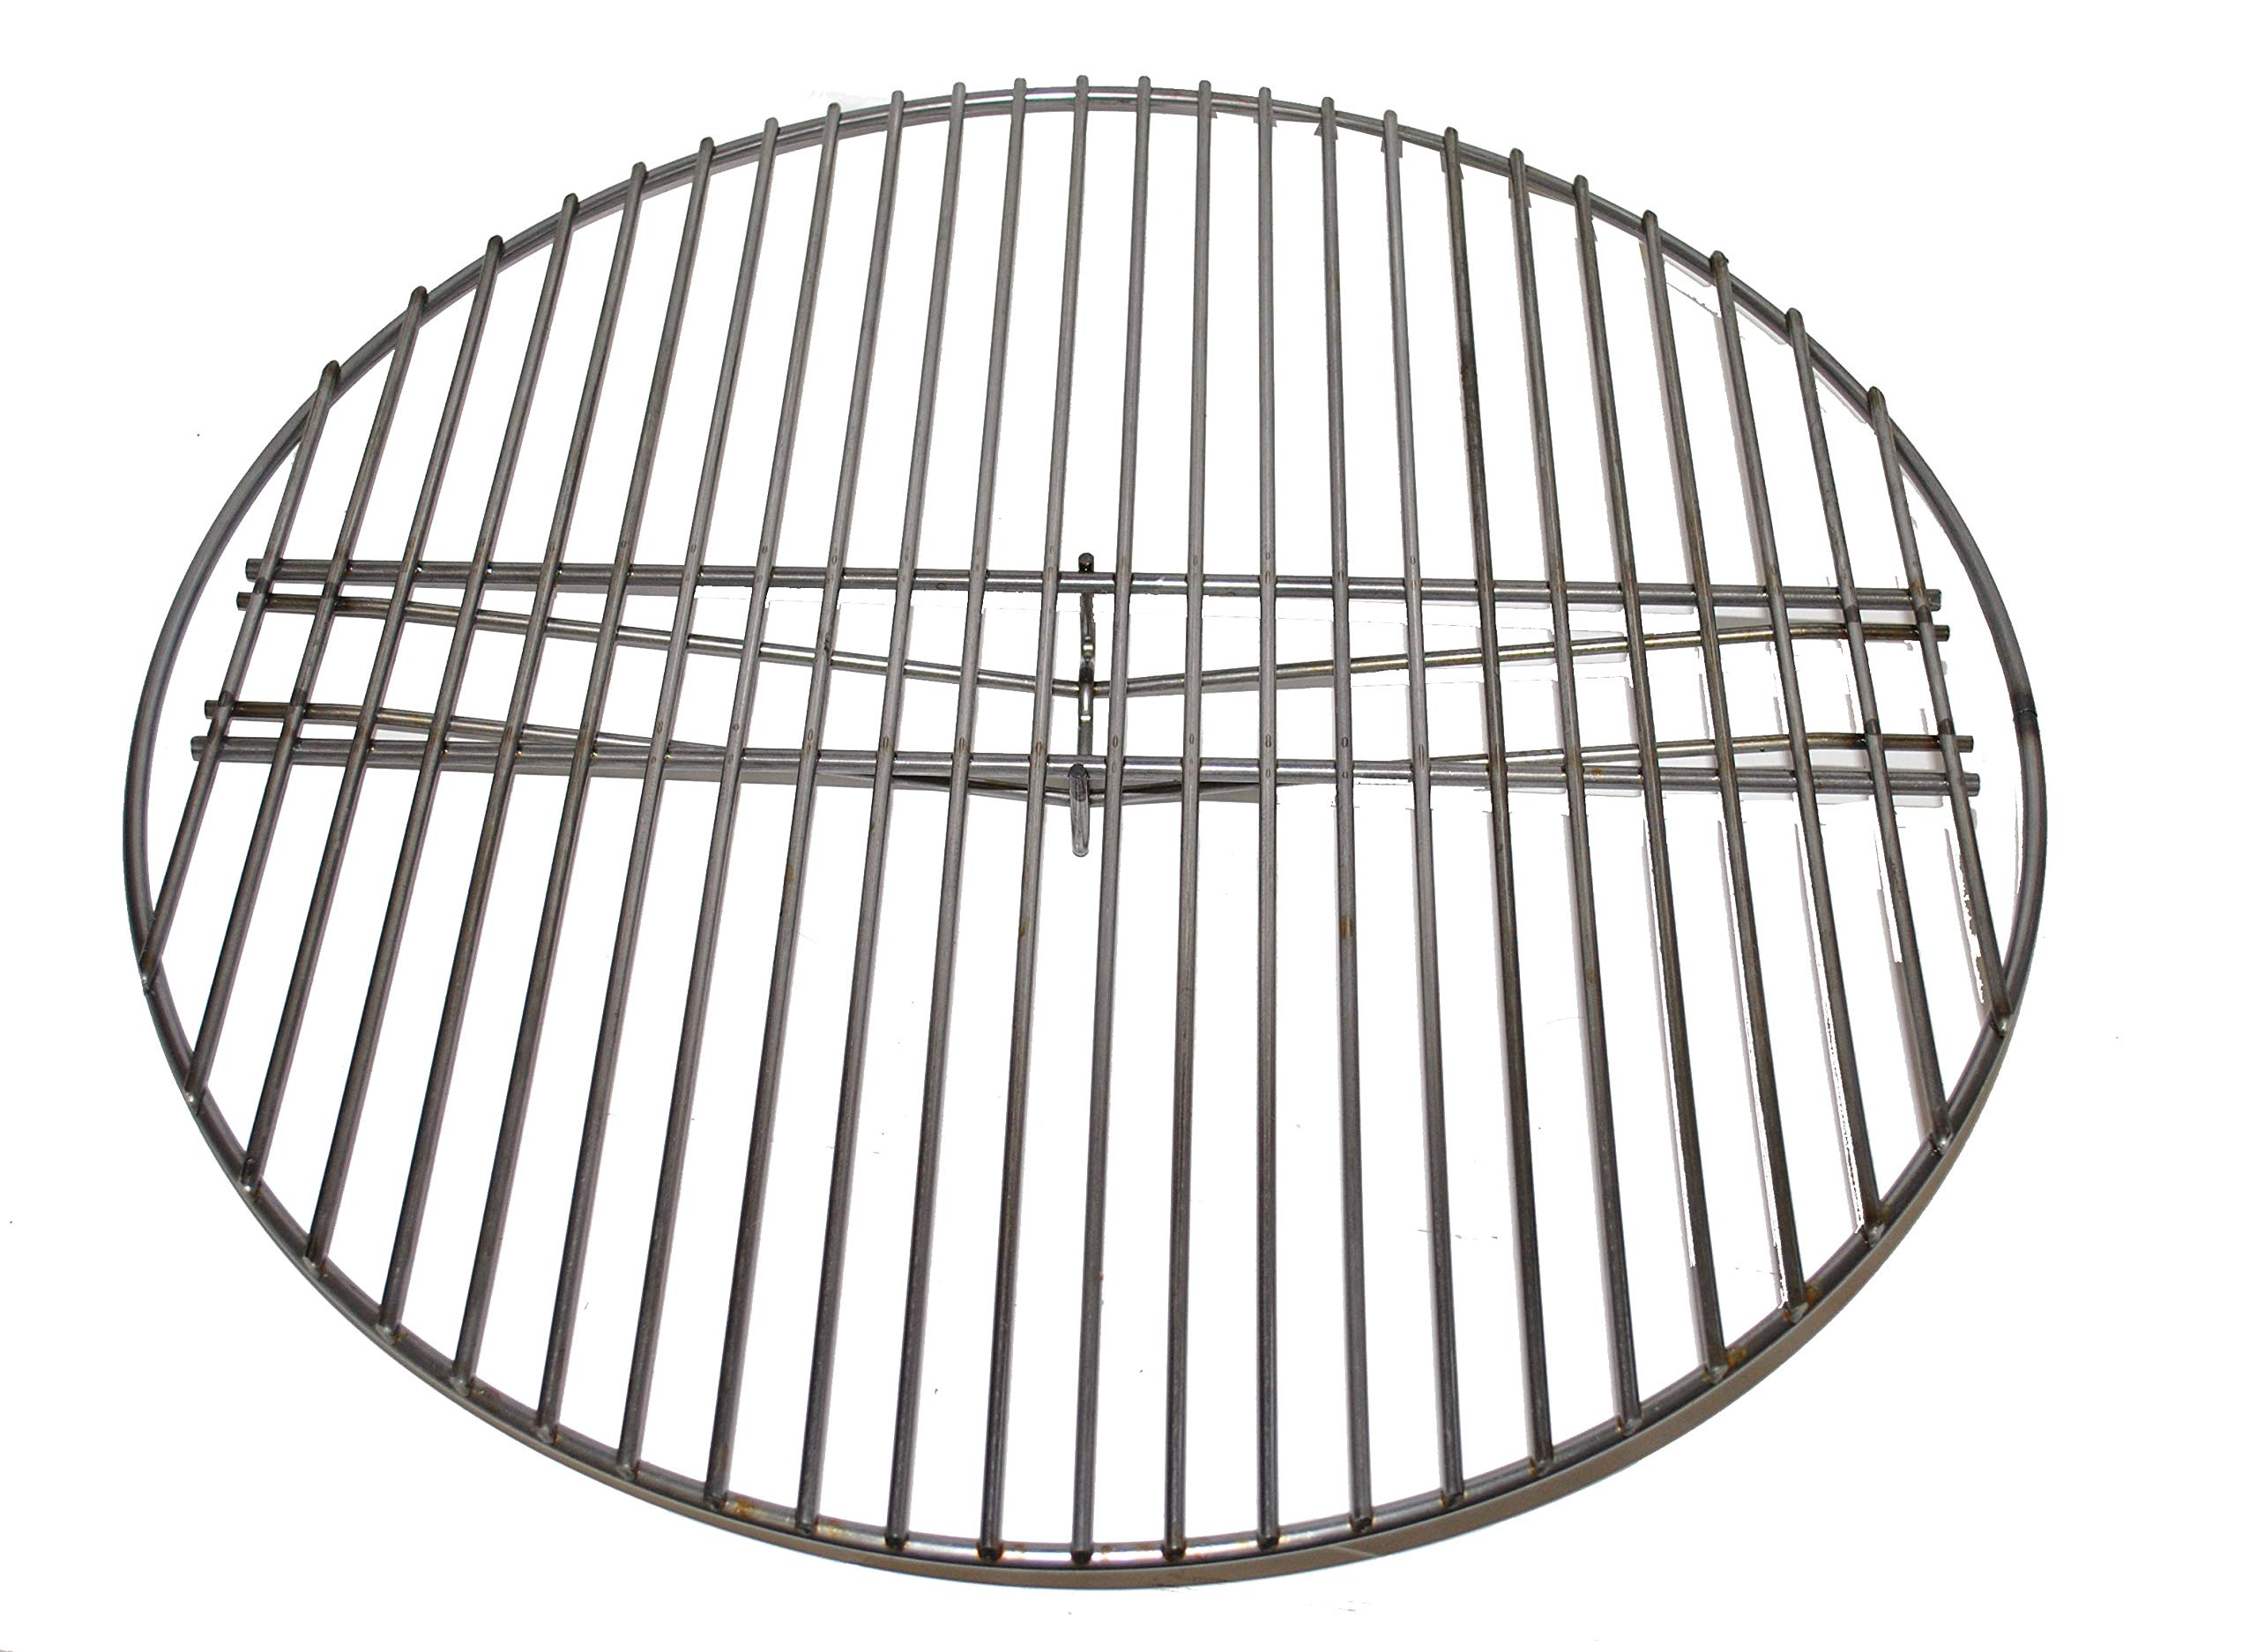 Weber 66911 19.5'' Charcoal Grate for Model 81001 26'' ONE-Touch Kettle Grill Prior to 2000 by Weber